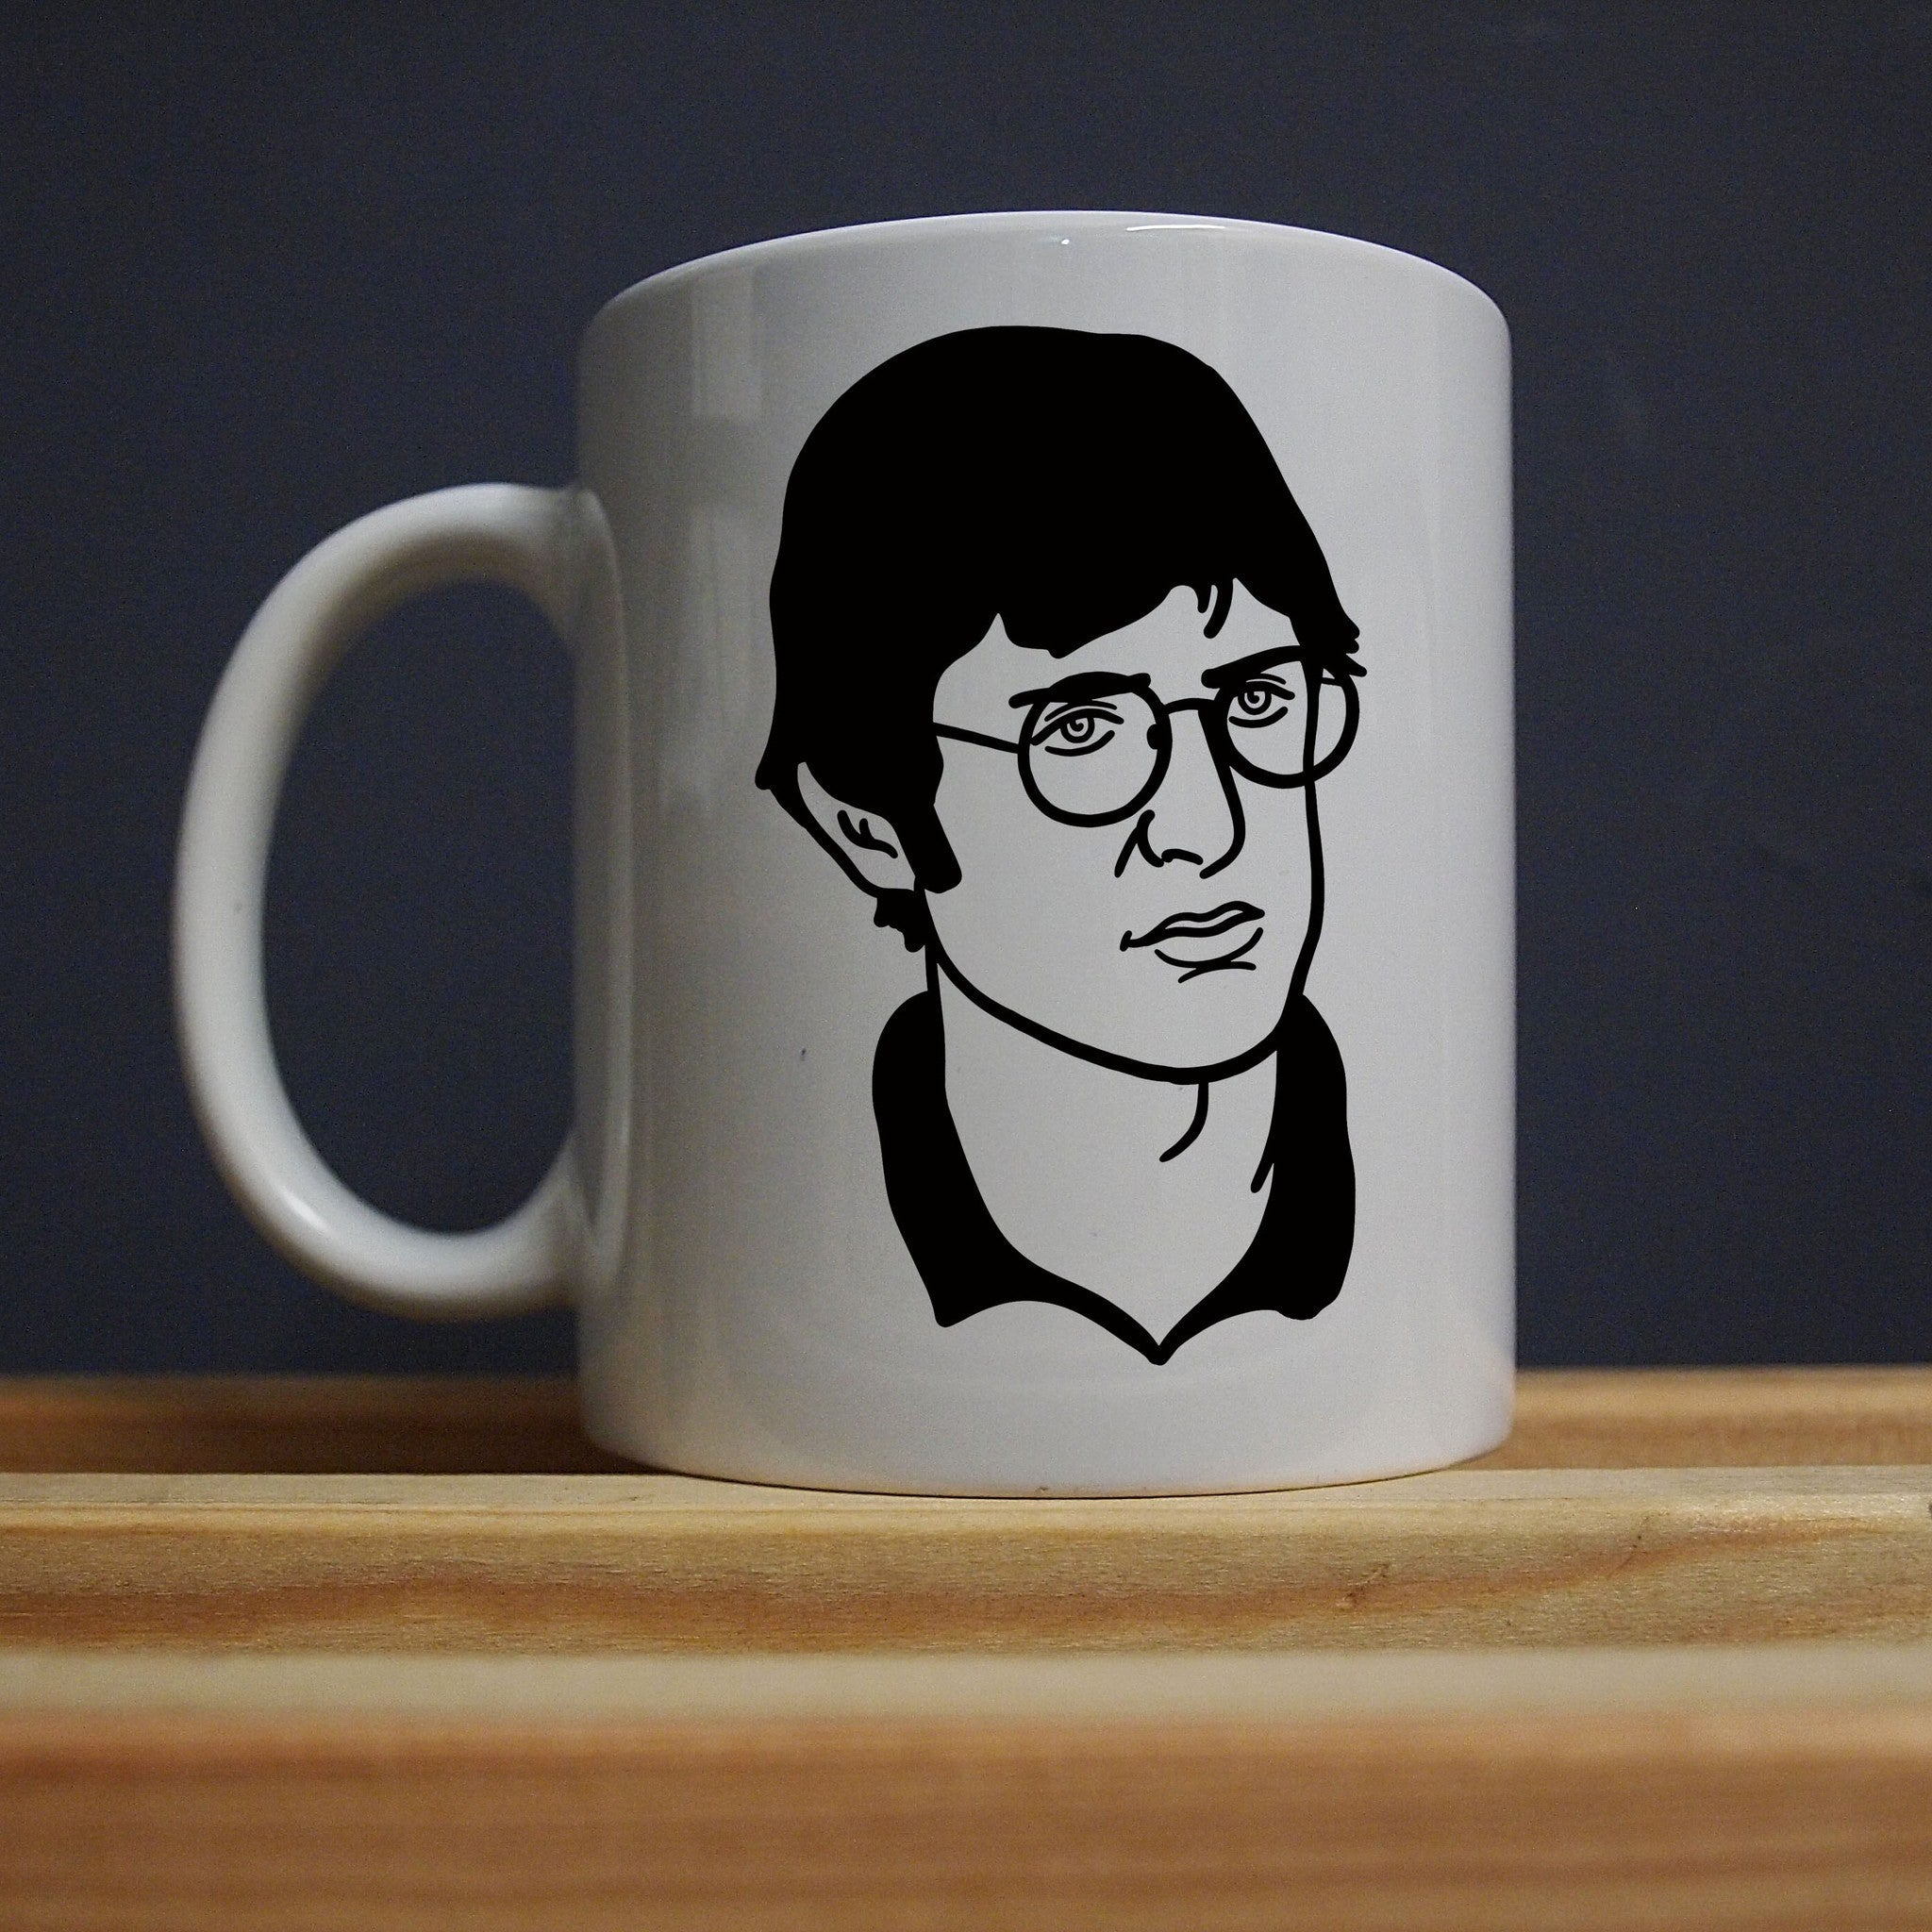 Louis Theroux - I wasn't quite sure what I'd just seen Mug